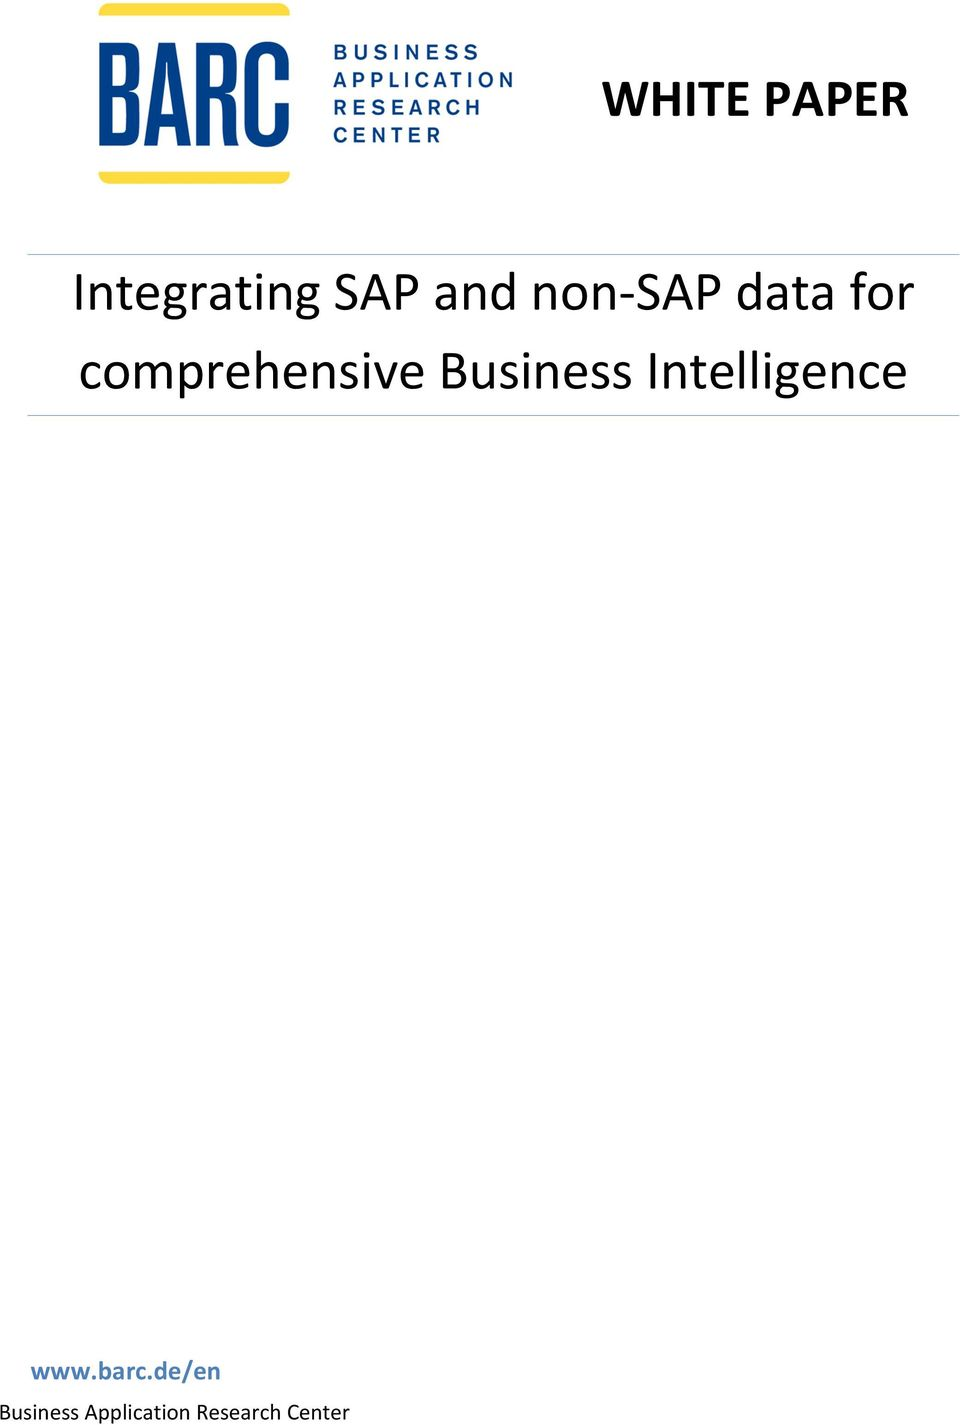 Business Intelligence www.barc.